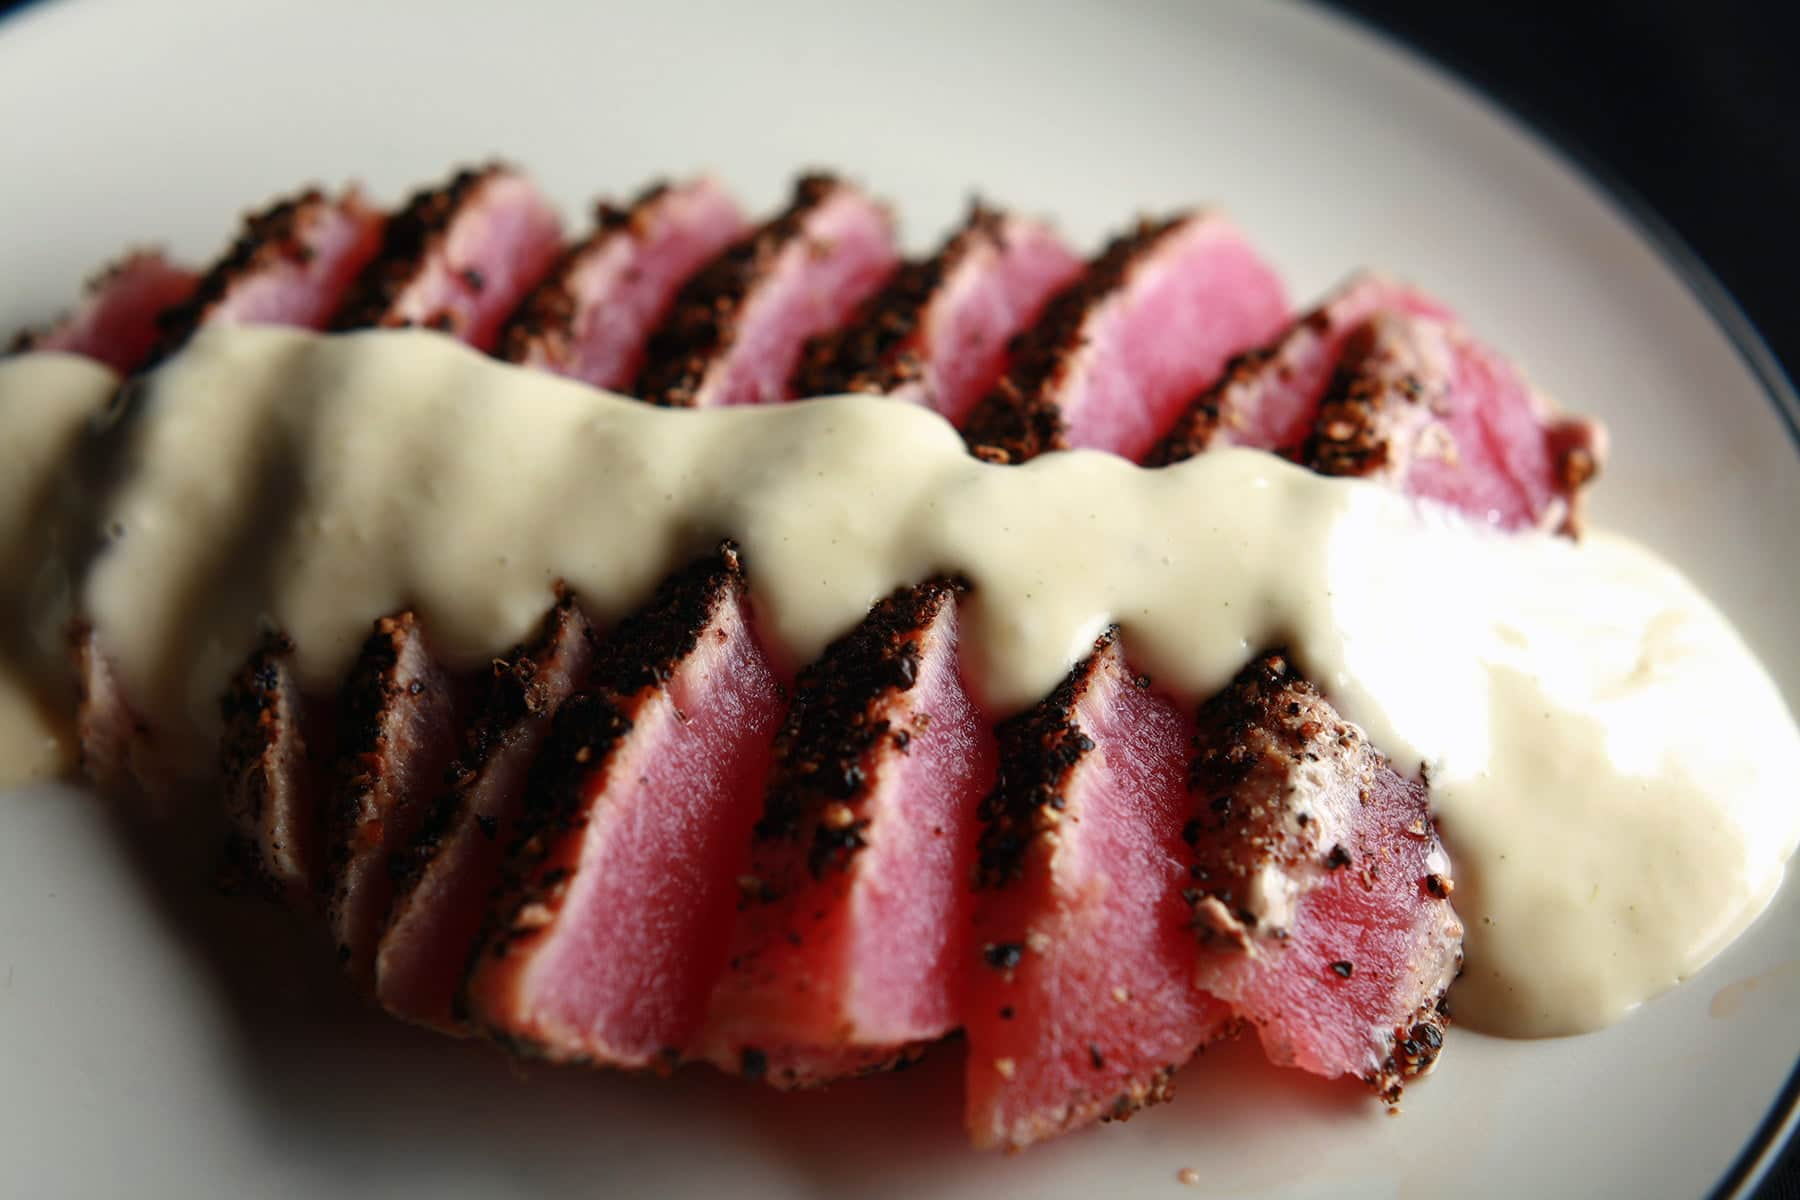 Pepper crusted tuna with wasabi cream sauce. The tuna steak has been cooked rare, sliced up, and fanned out on the plate before being topped with the sauce.